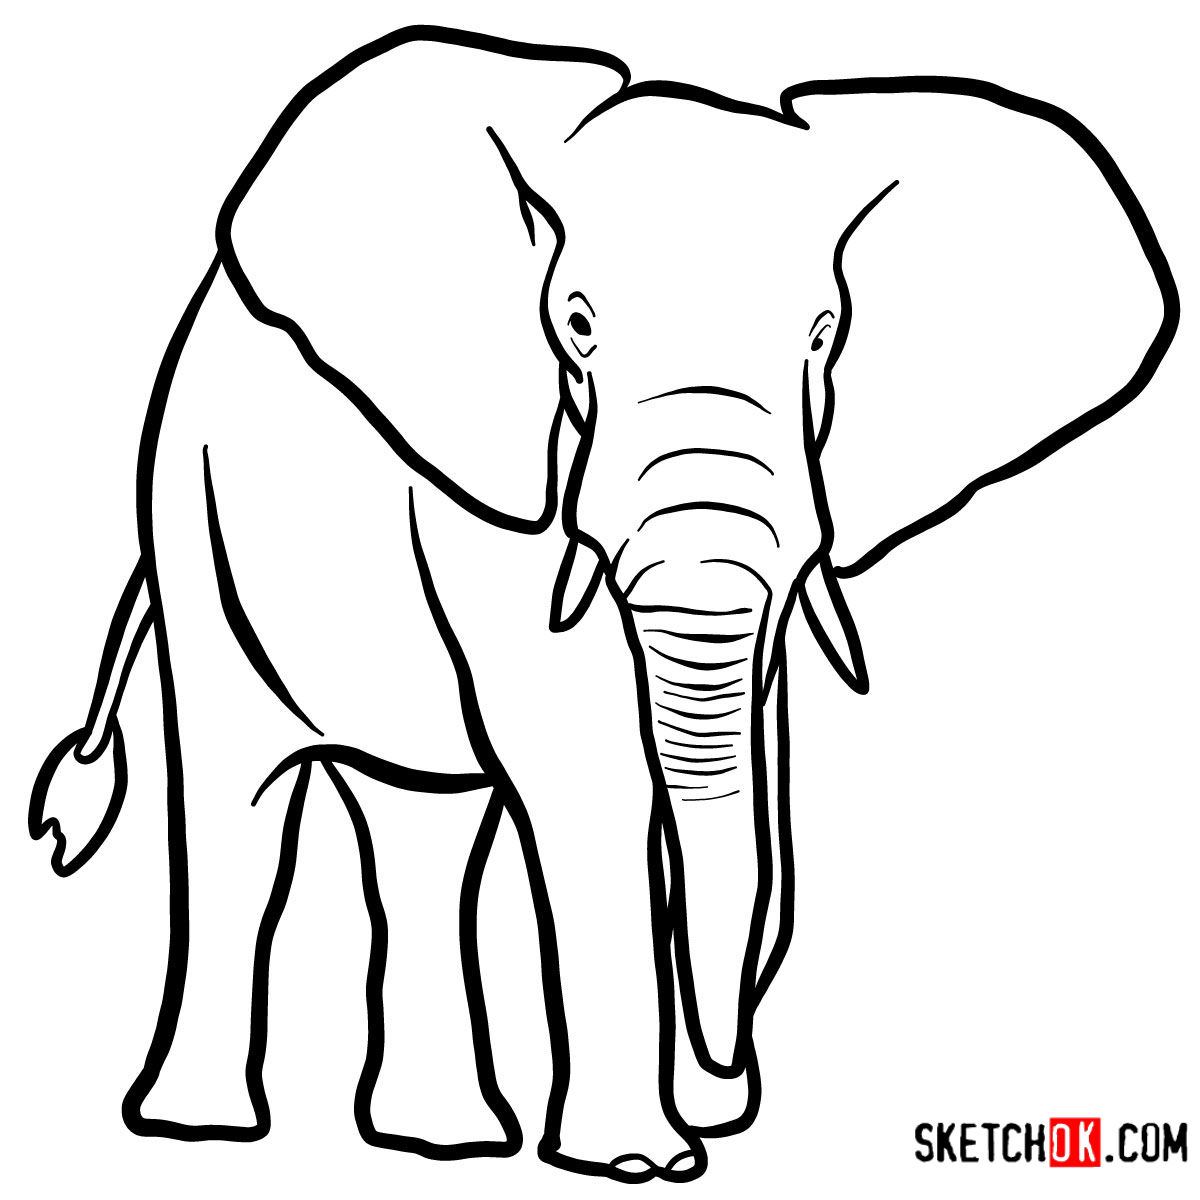 How To Draw An Elephant Front View Wild Animals Sketchok Step By Step Drawing Tutorials